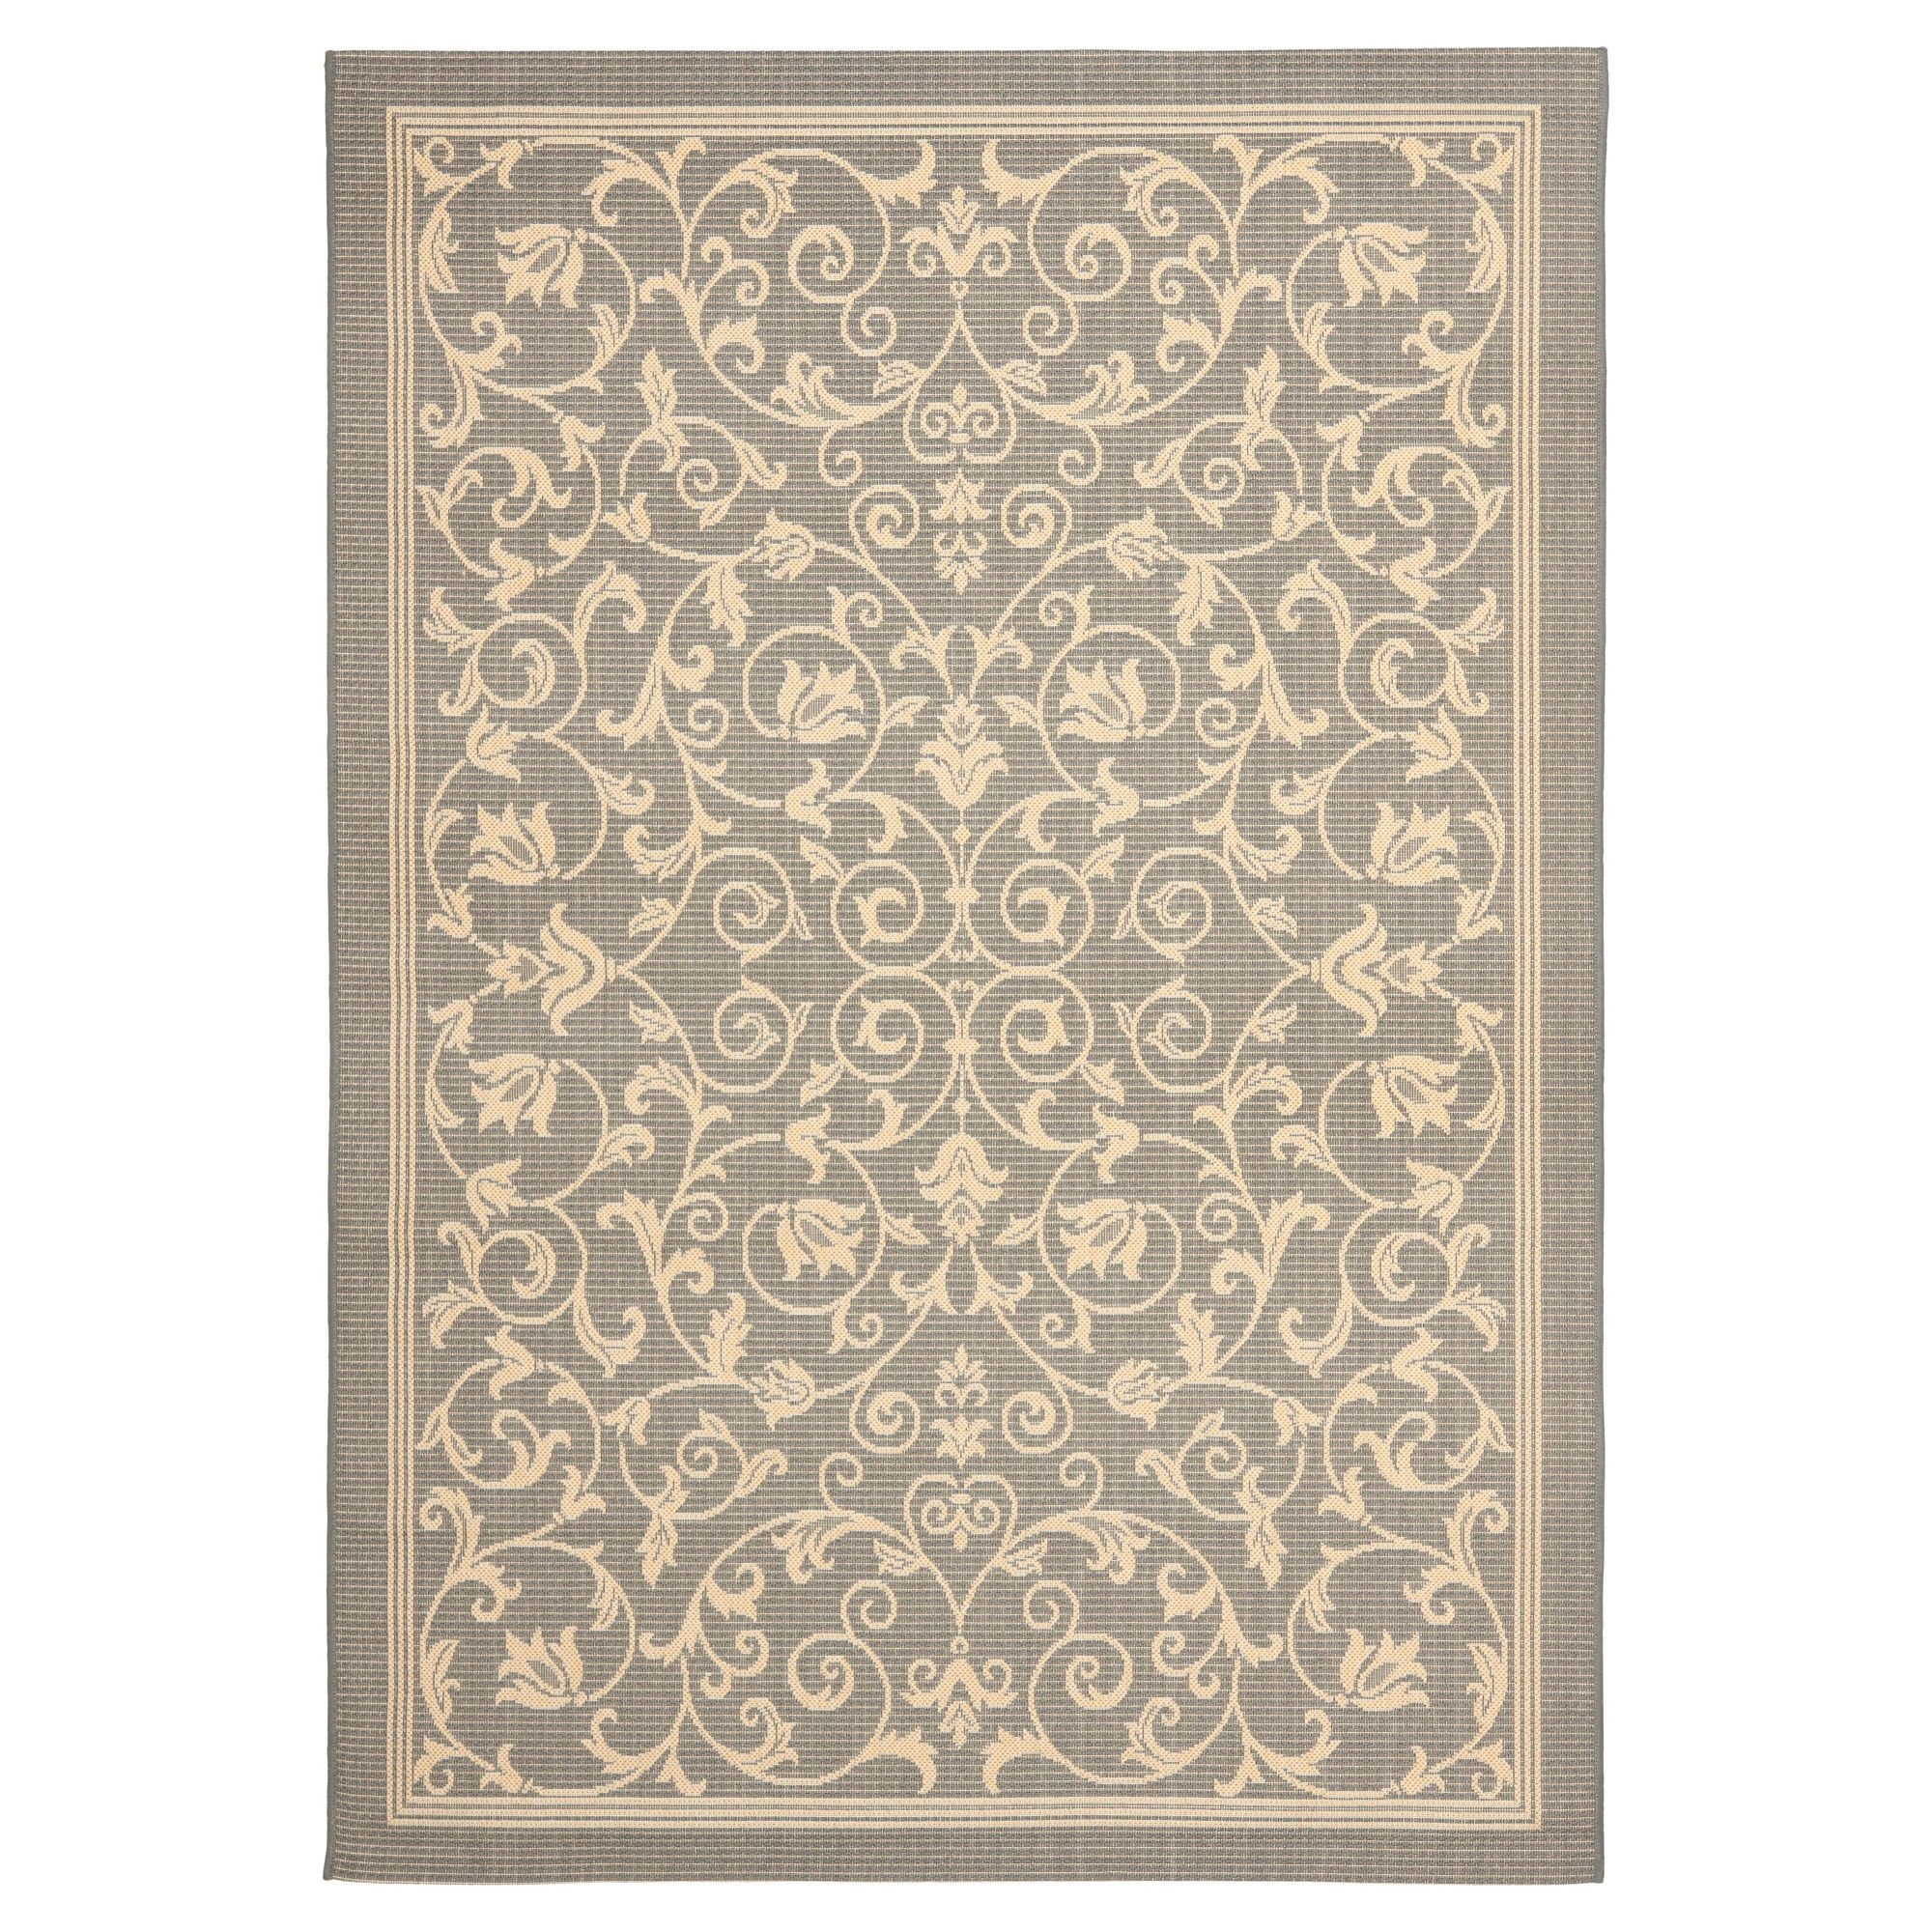 Vaucluse Rectangle 8 11 X 12 Outdoor Rug Gray Natural Safavieh